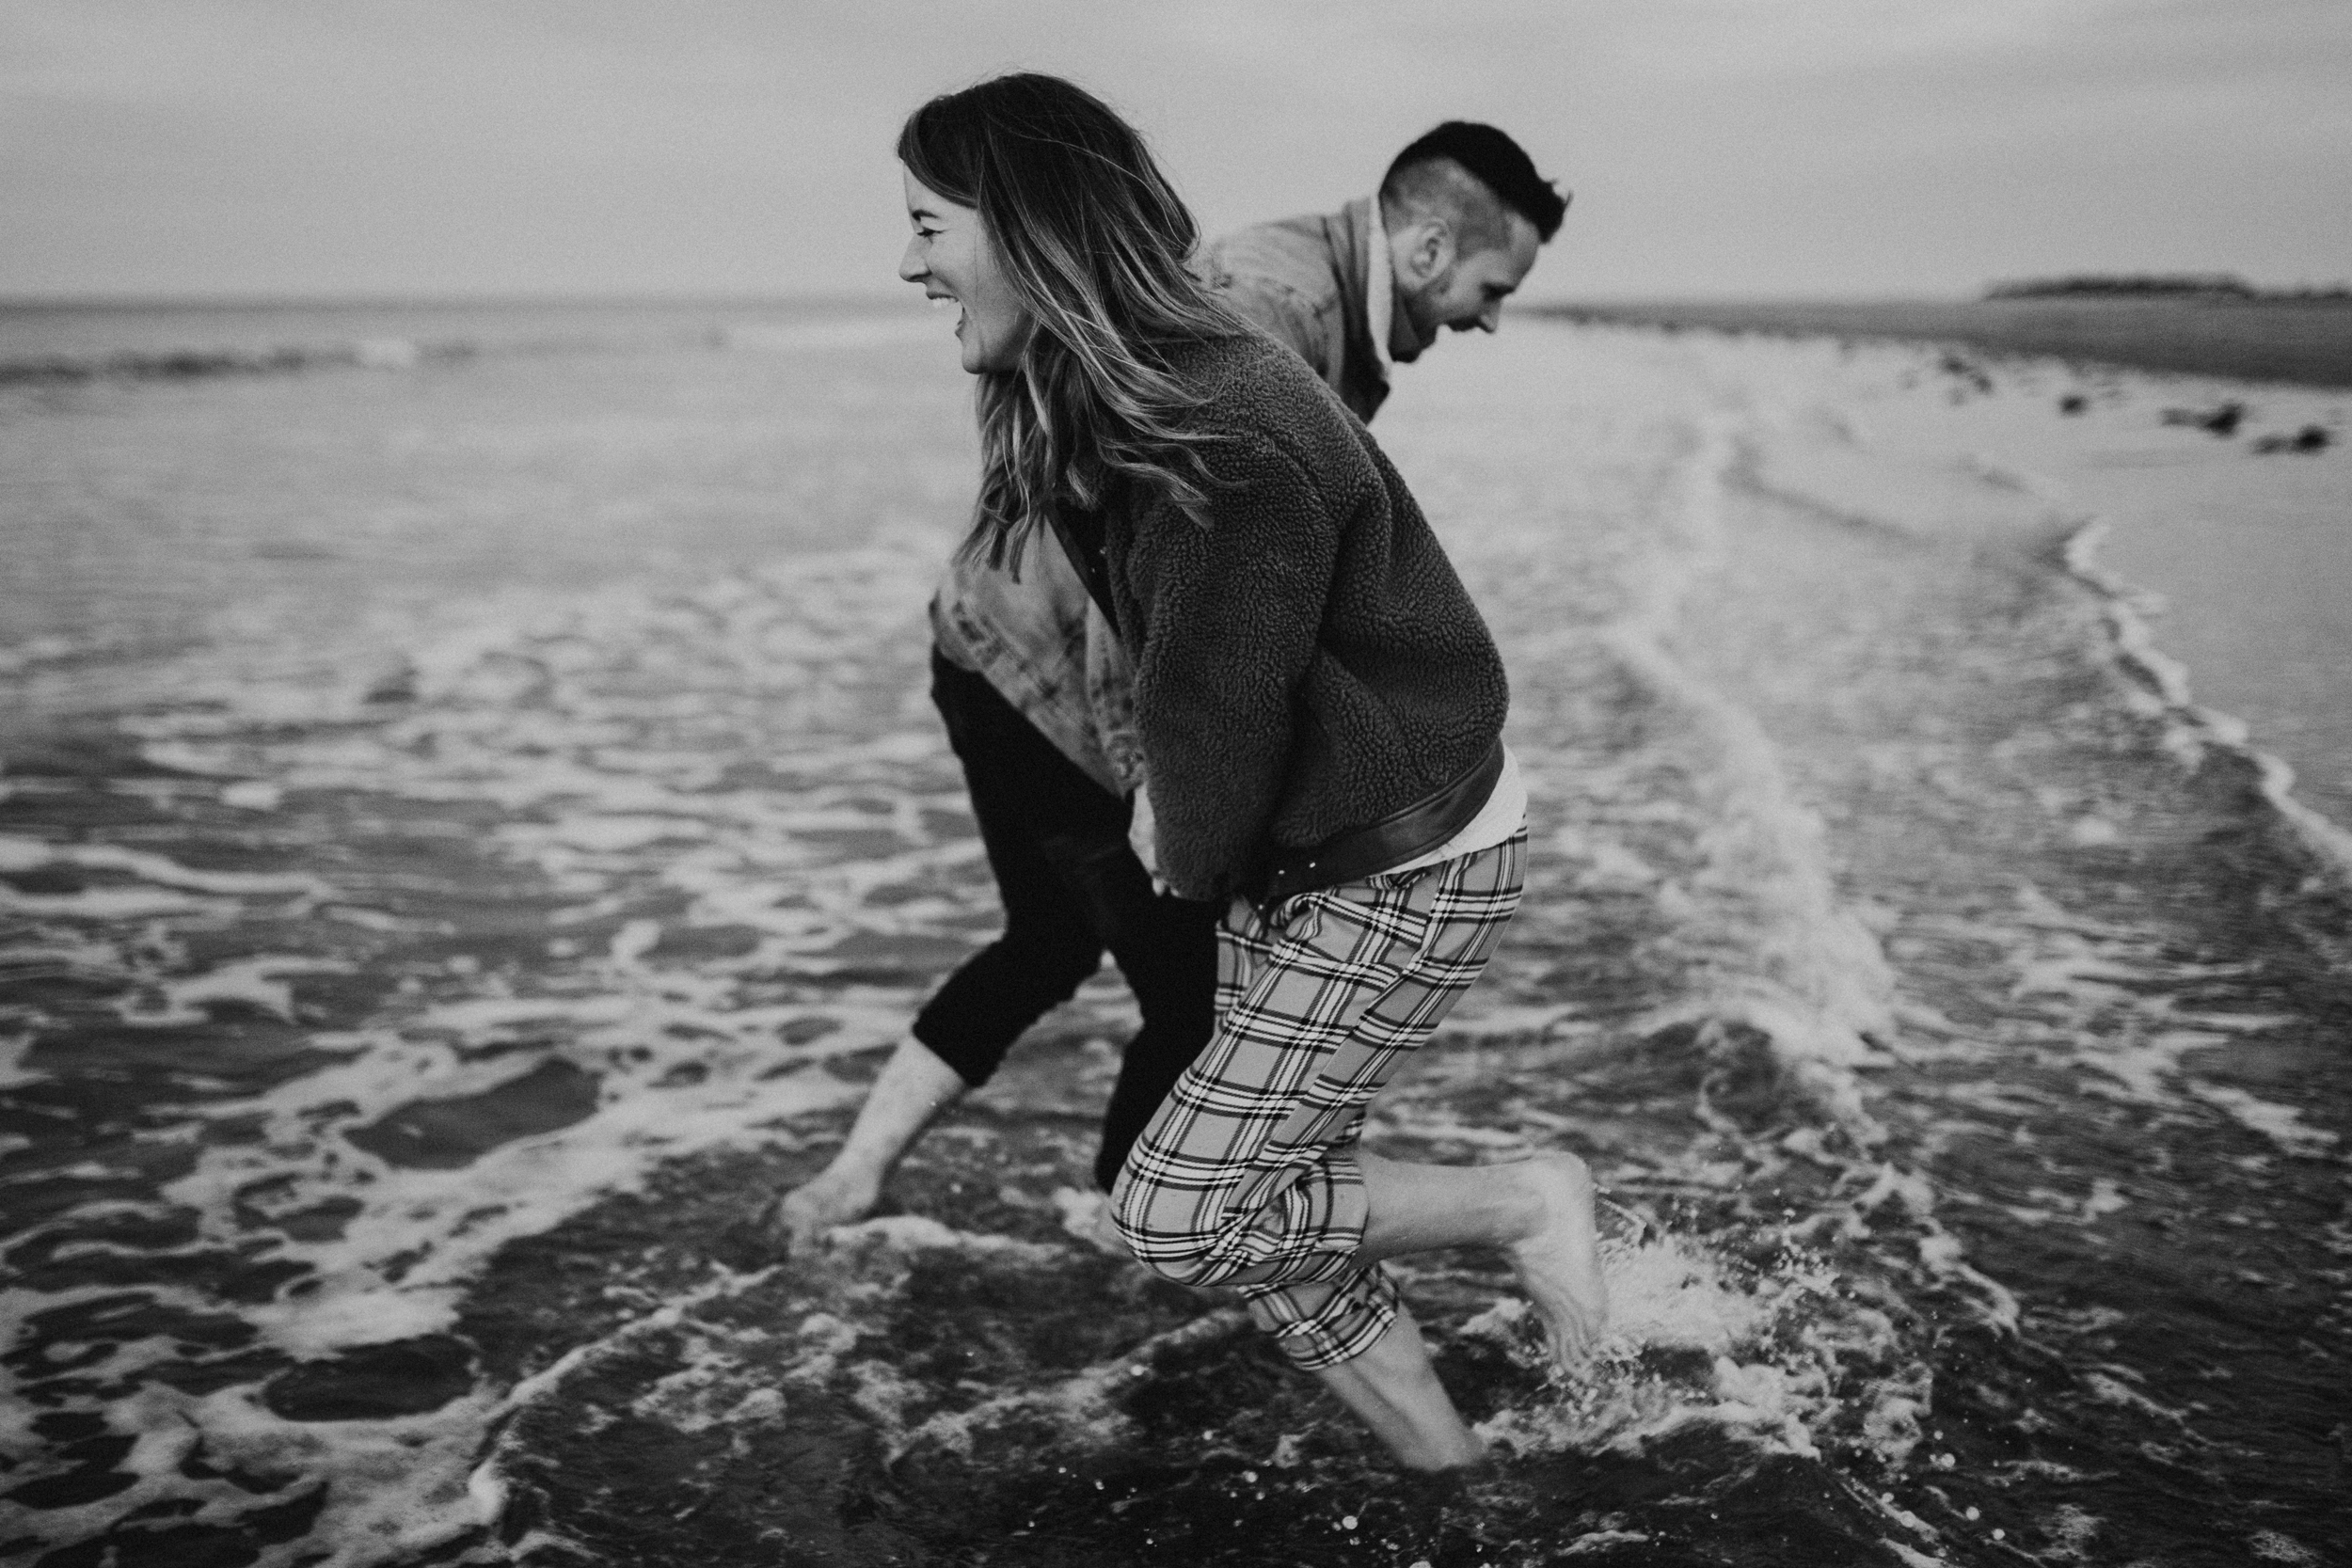 Claire-Liam-Beach-Coastal-Engagement-Session-Norfolk-Darina-Stoda-Photography-26.jpg